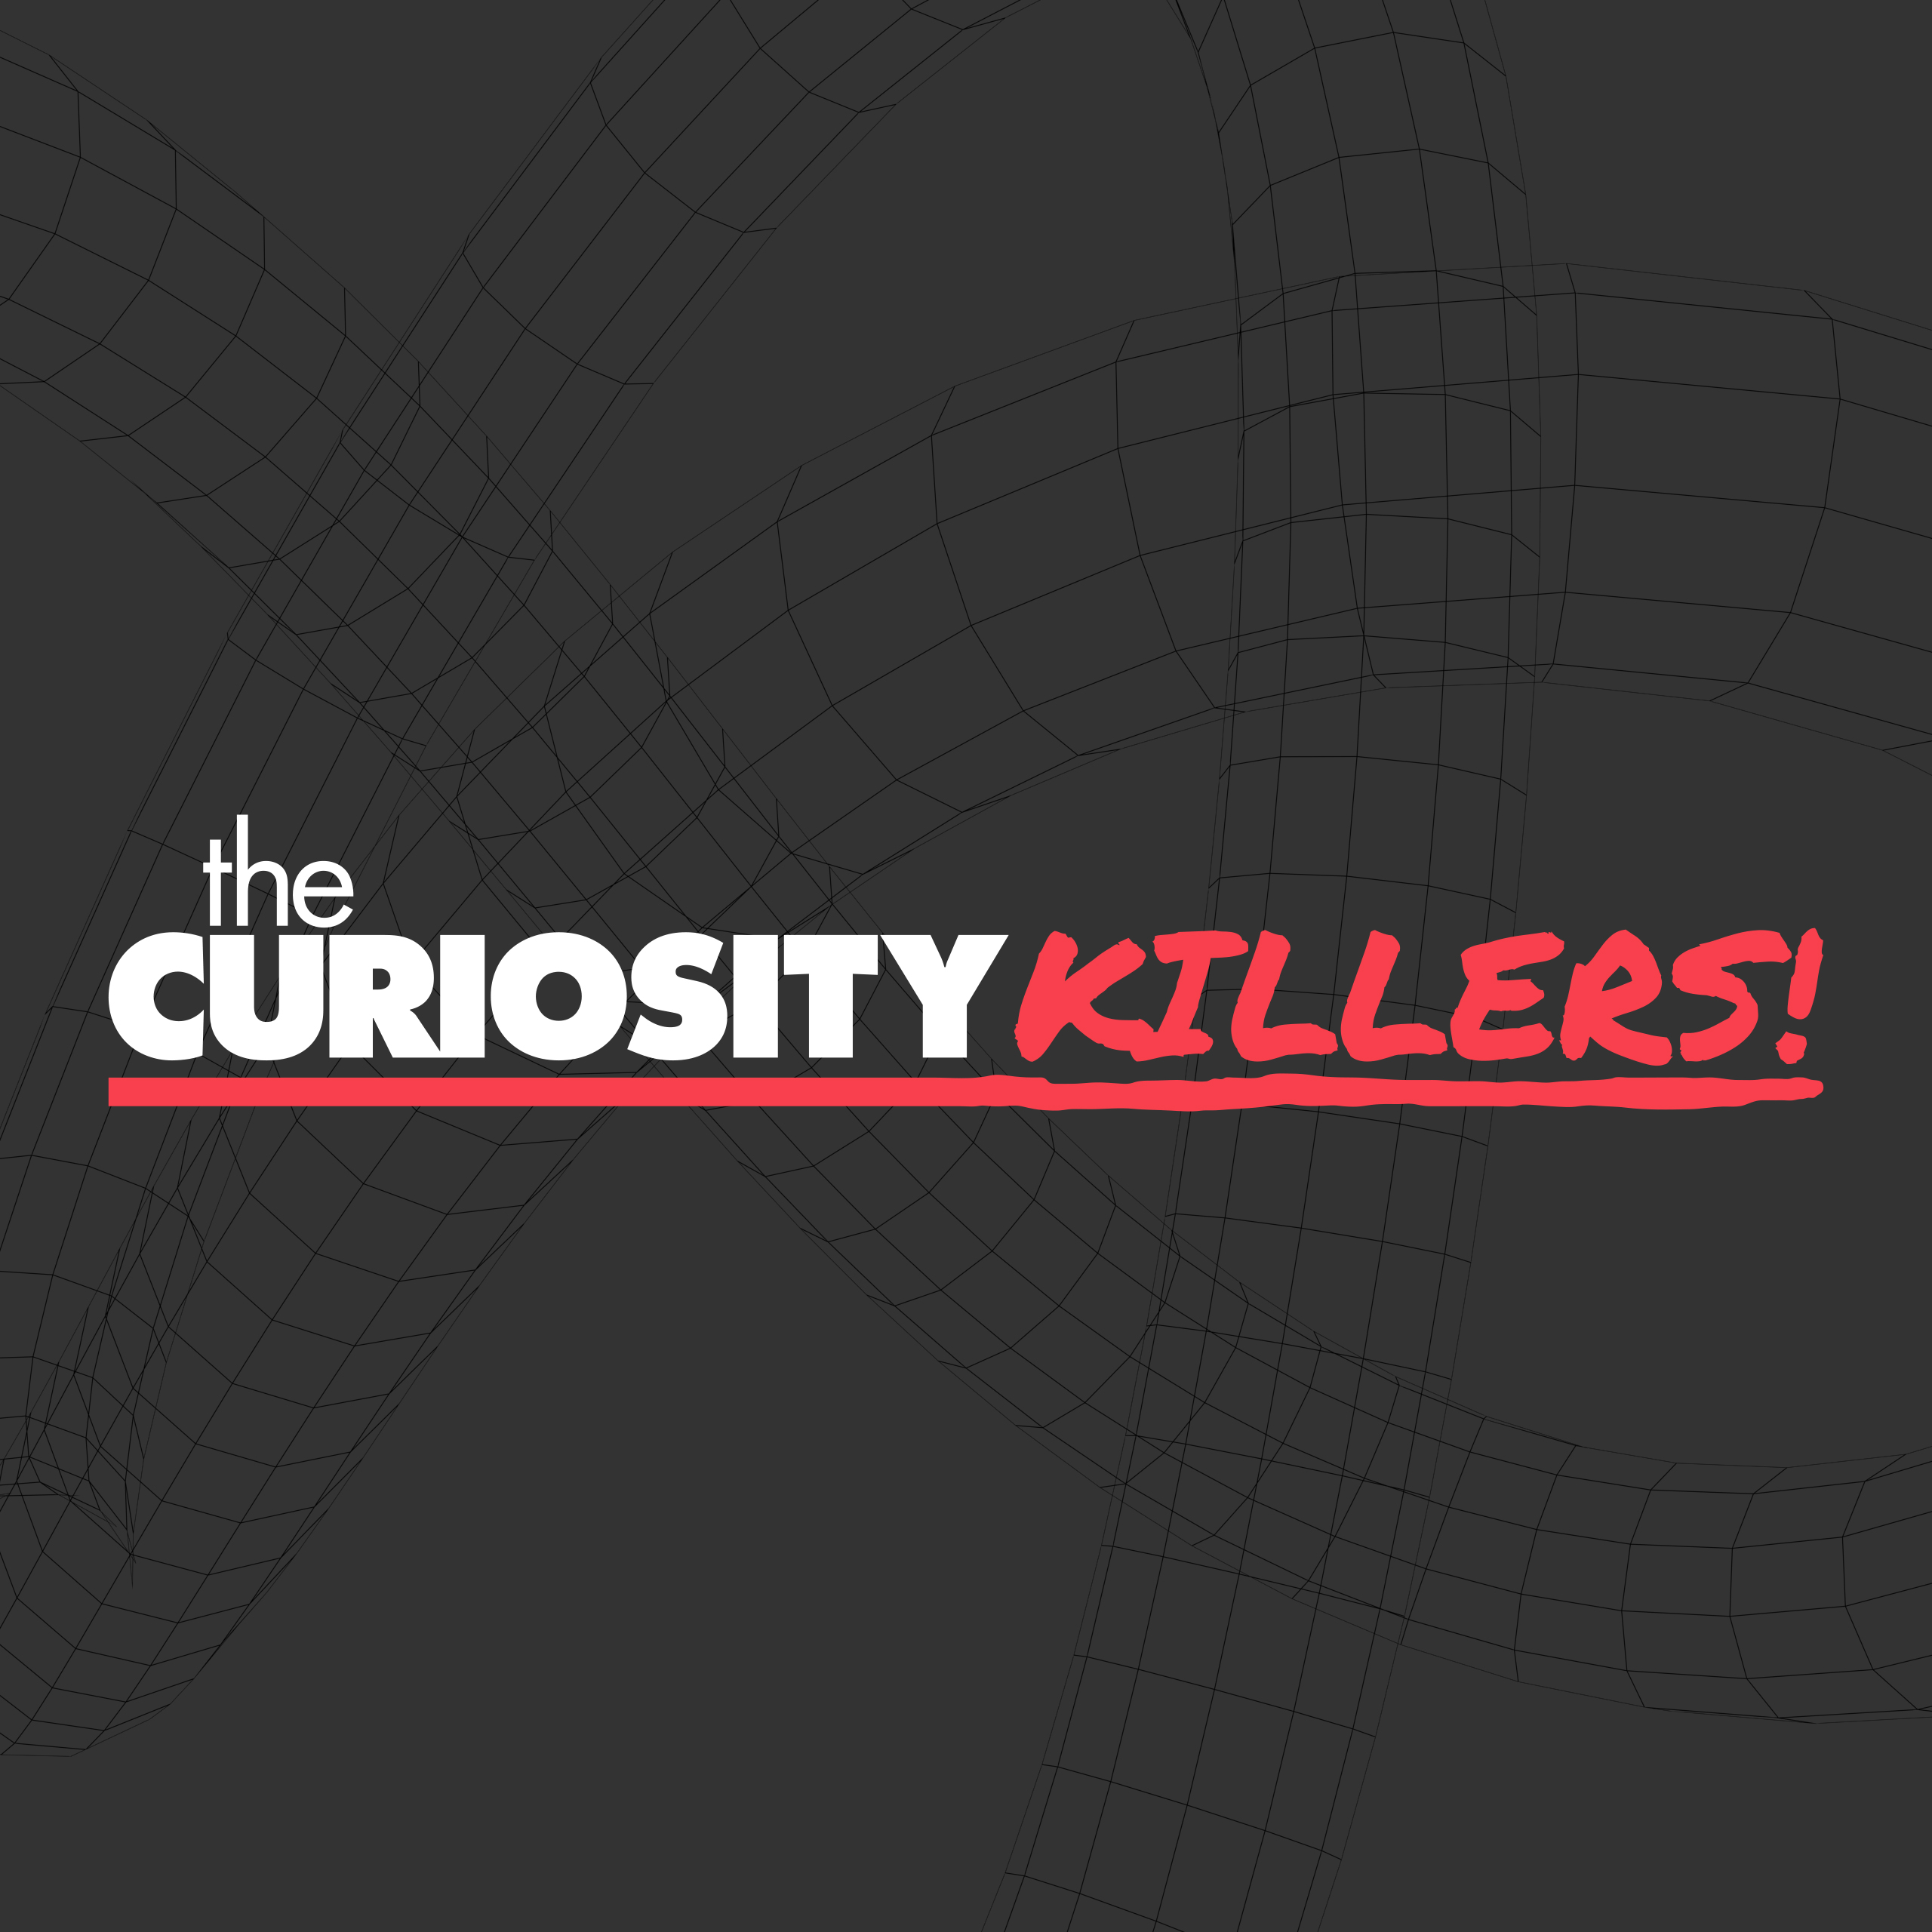 The Curiosity Killers